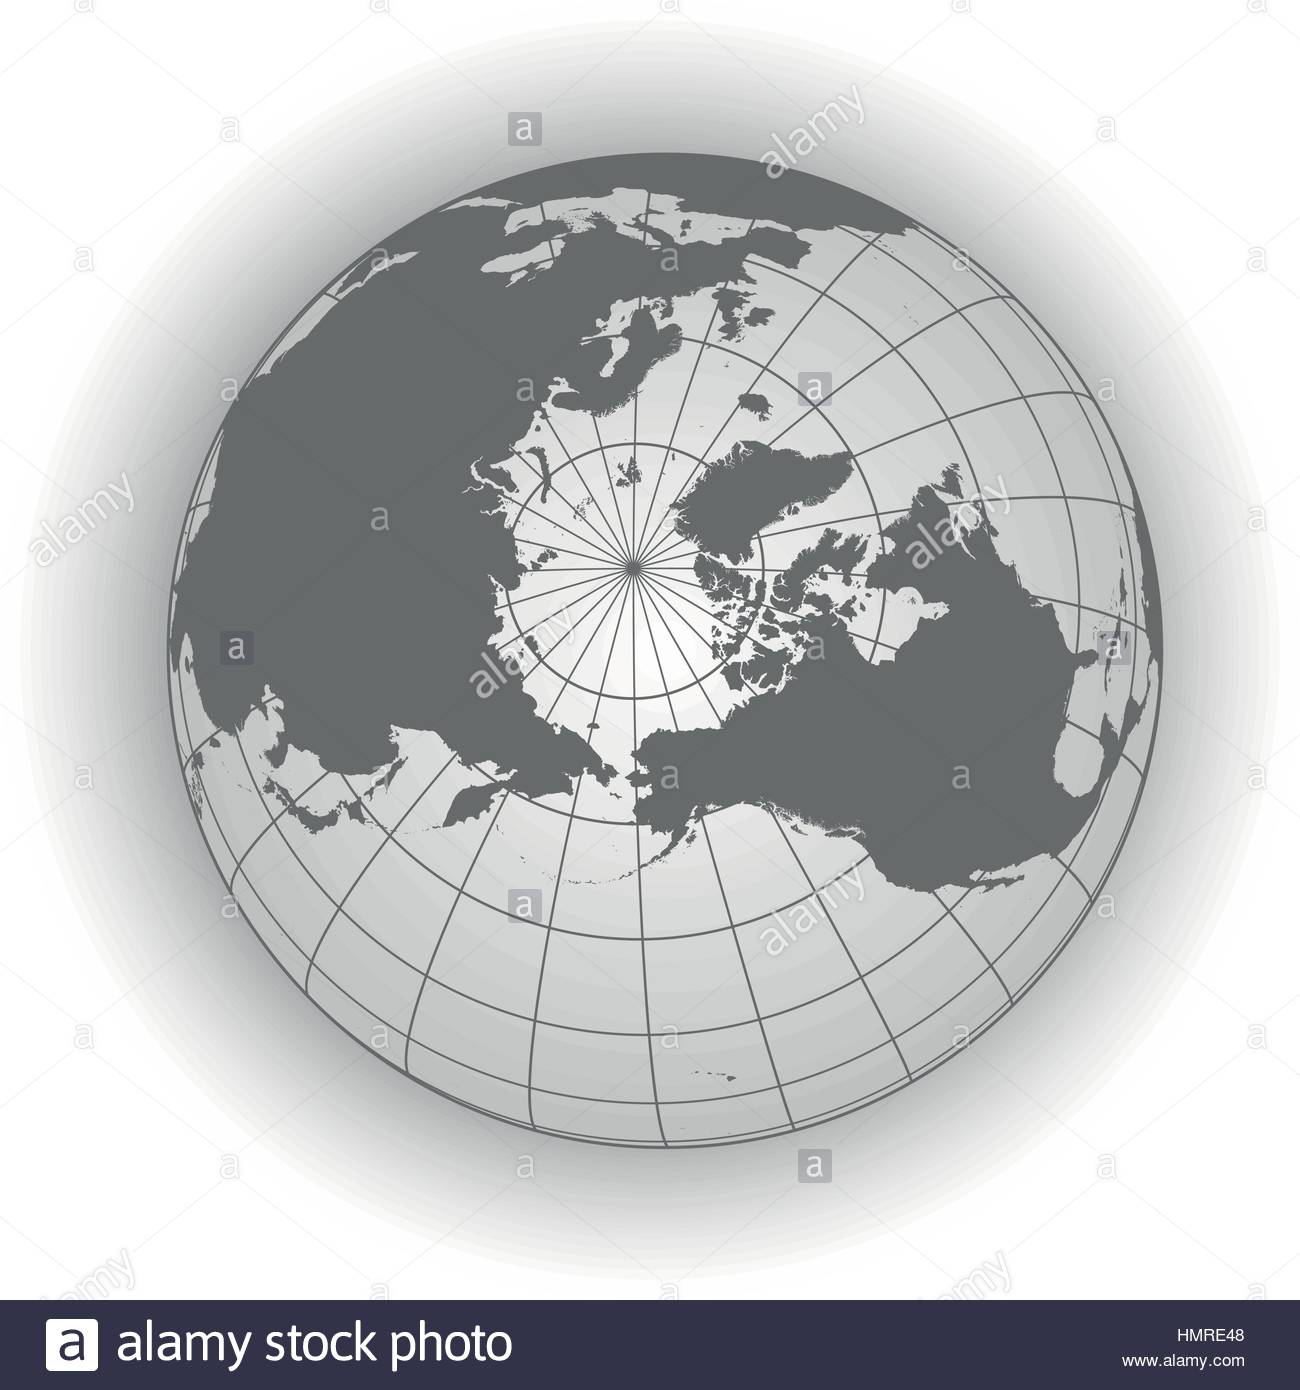 North pole map europe greenland asia america russia earth north pole map europe greenland asia america russia earth globe worldmap elements of this image furnished by nasa gumiabroncs Choice Image